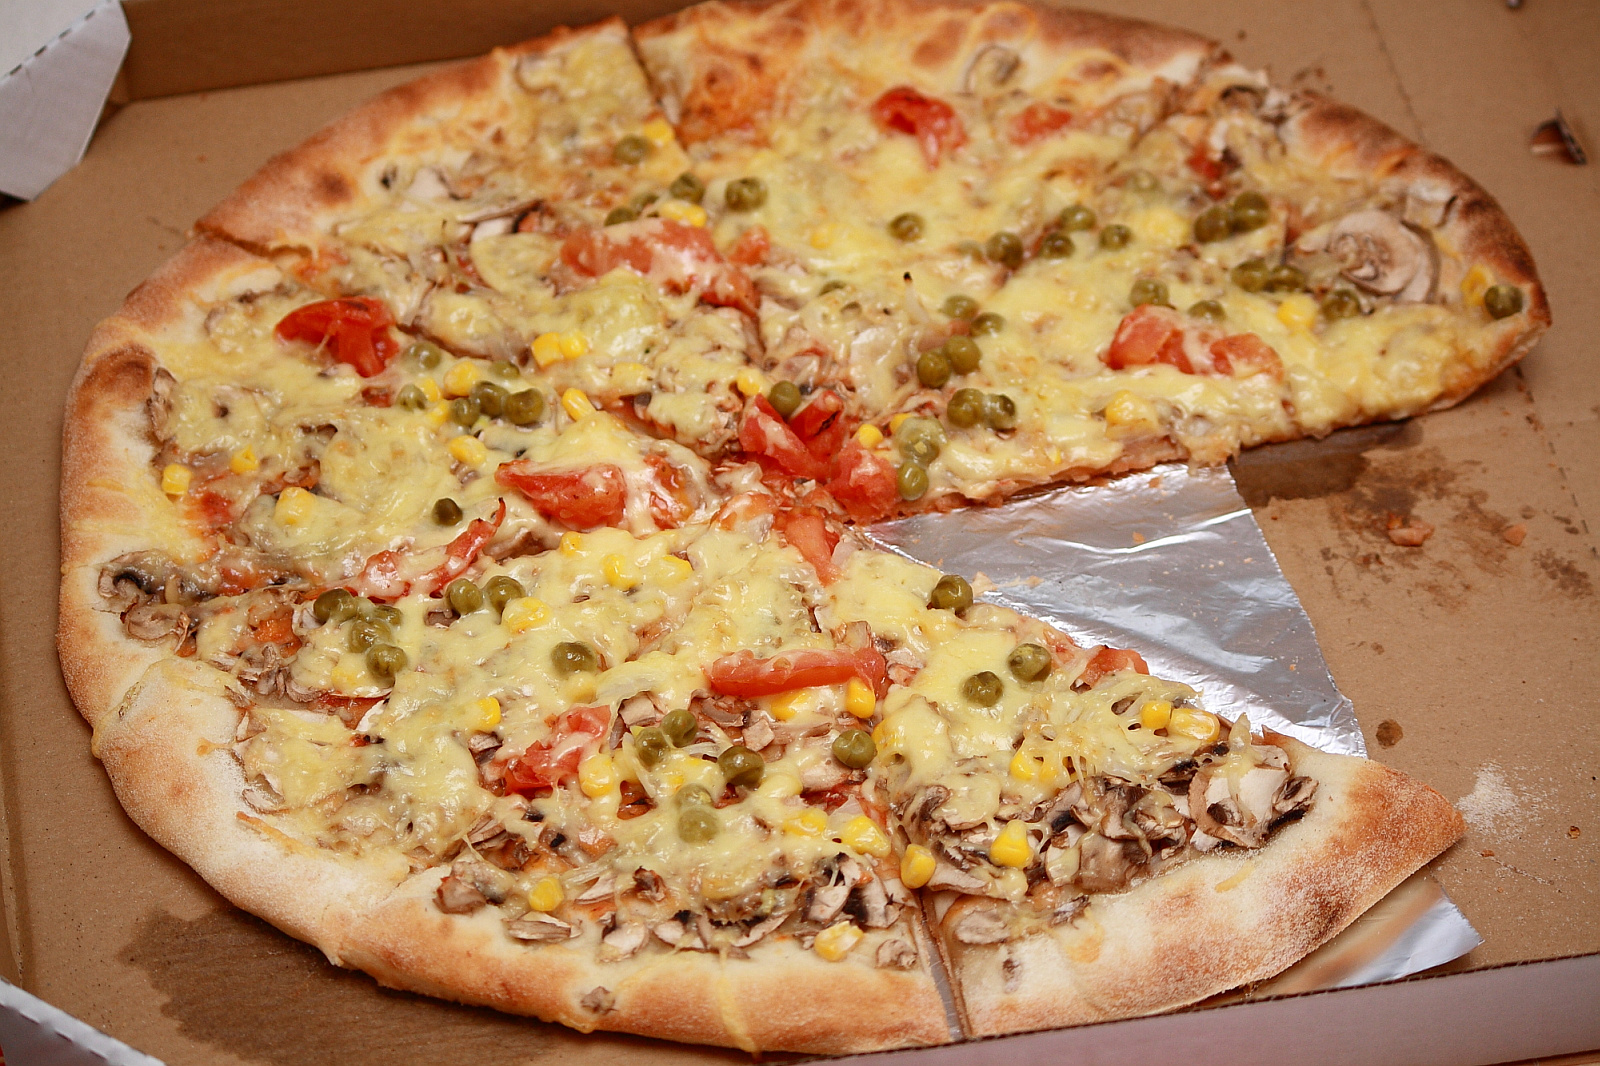 wysmienita pizza